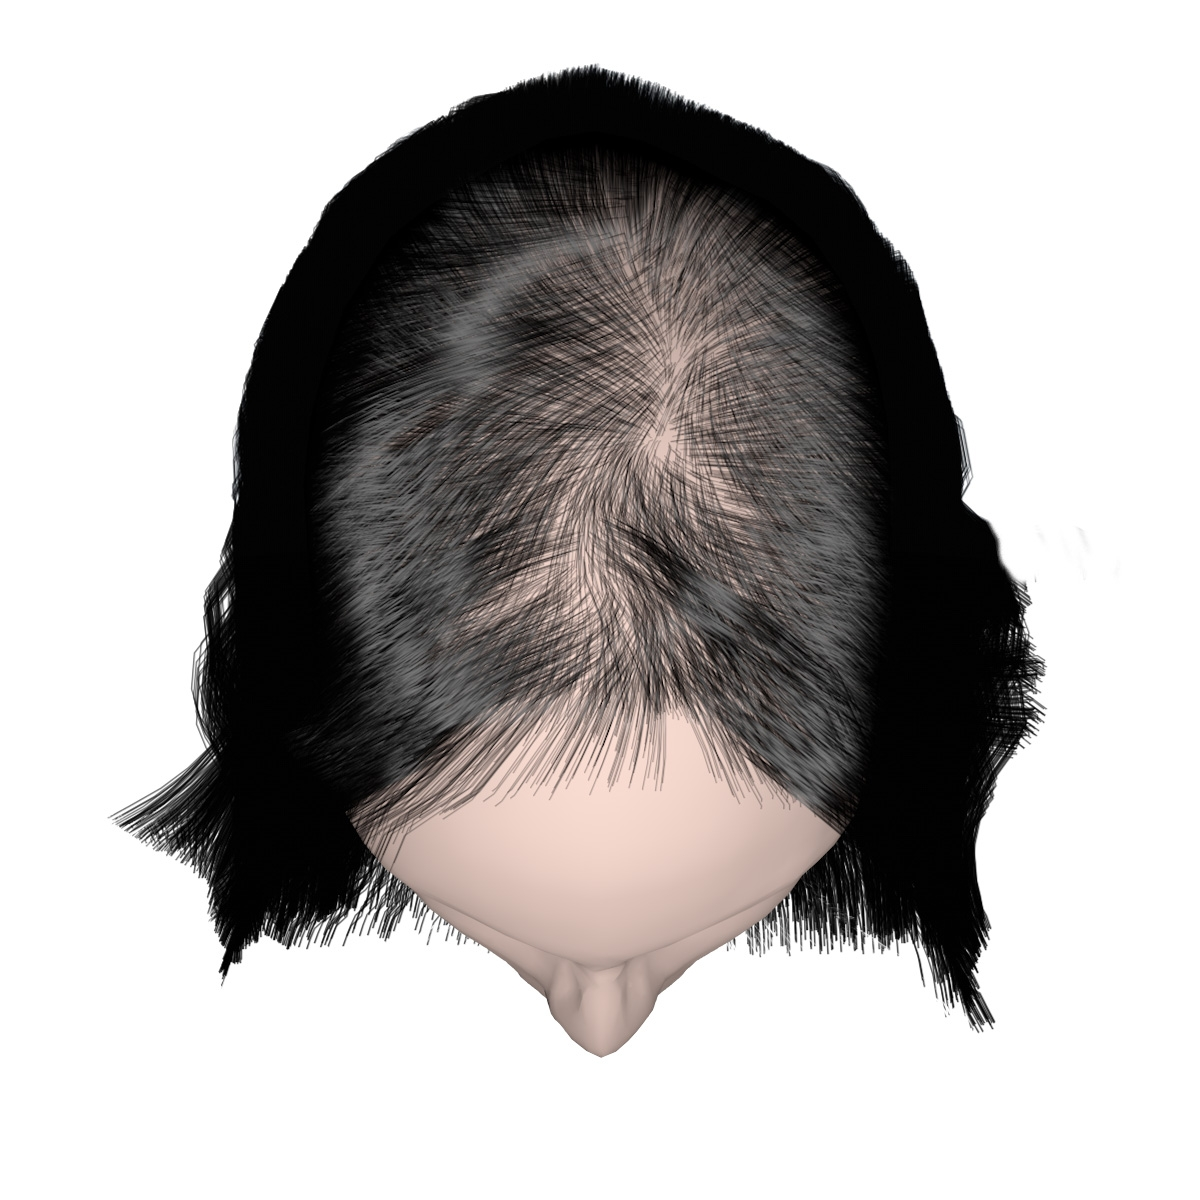 Beginning Stage of Hairloss